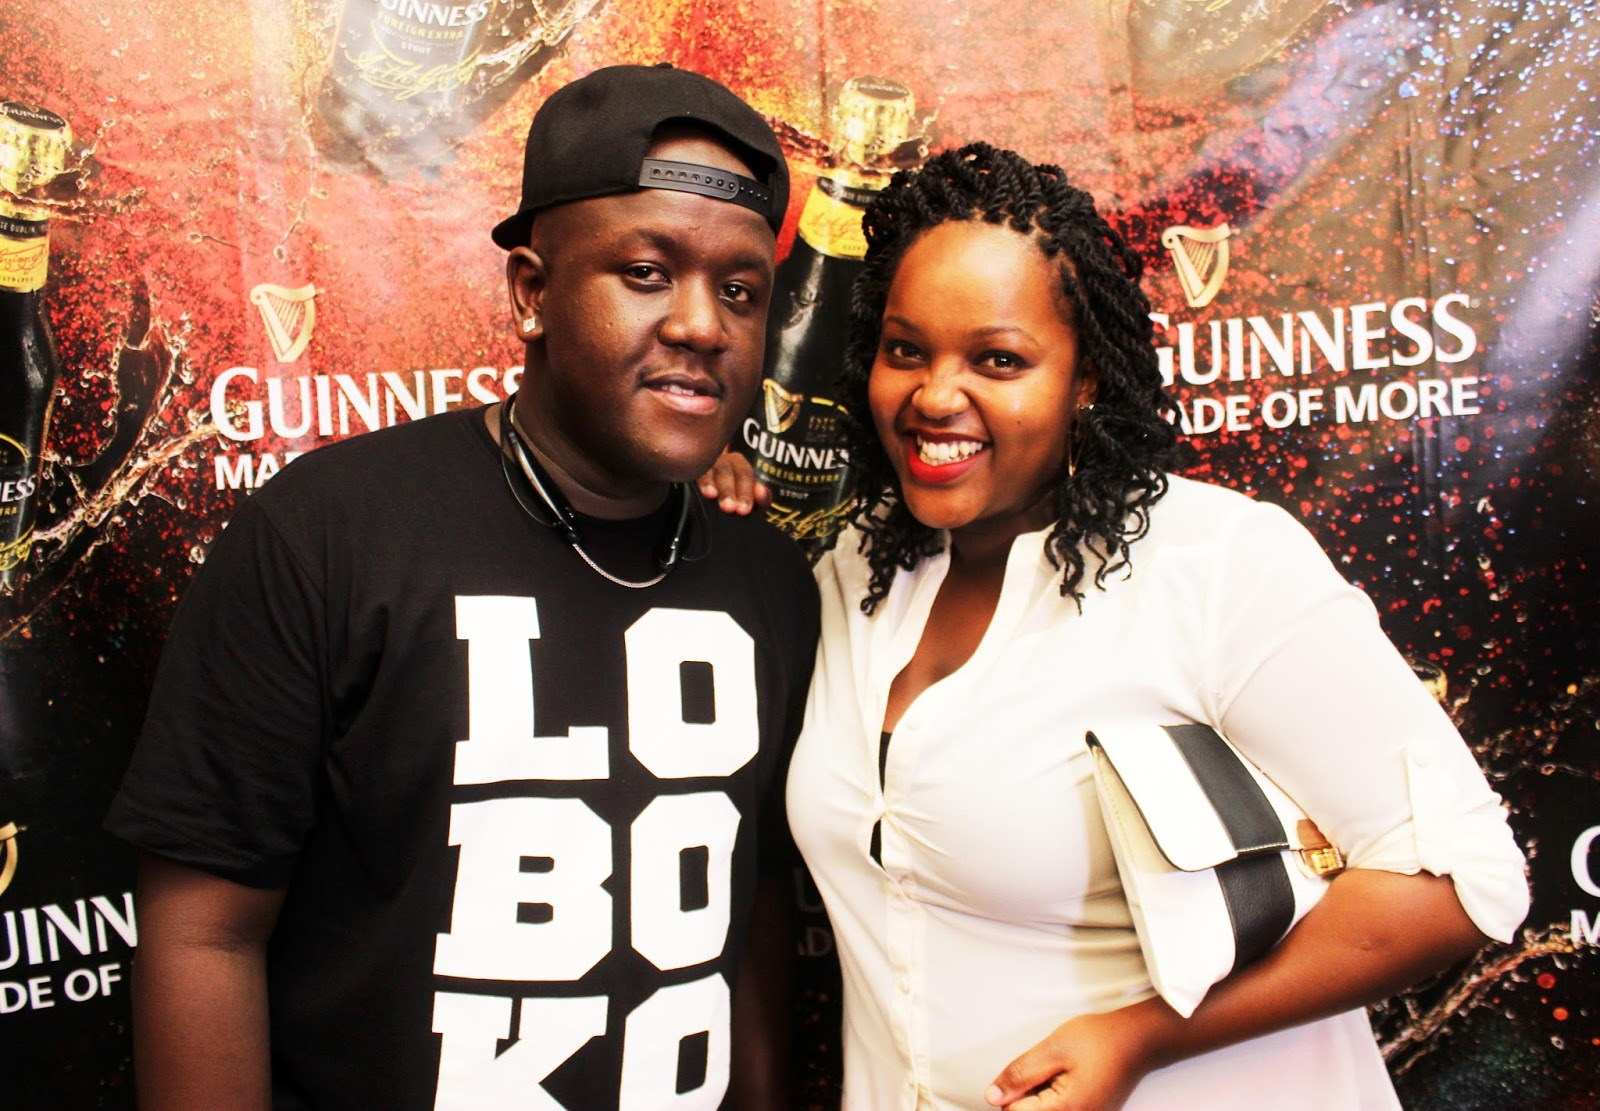 Dj Joe Mfalme and Samantha Wainaina